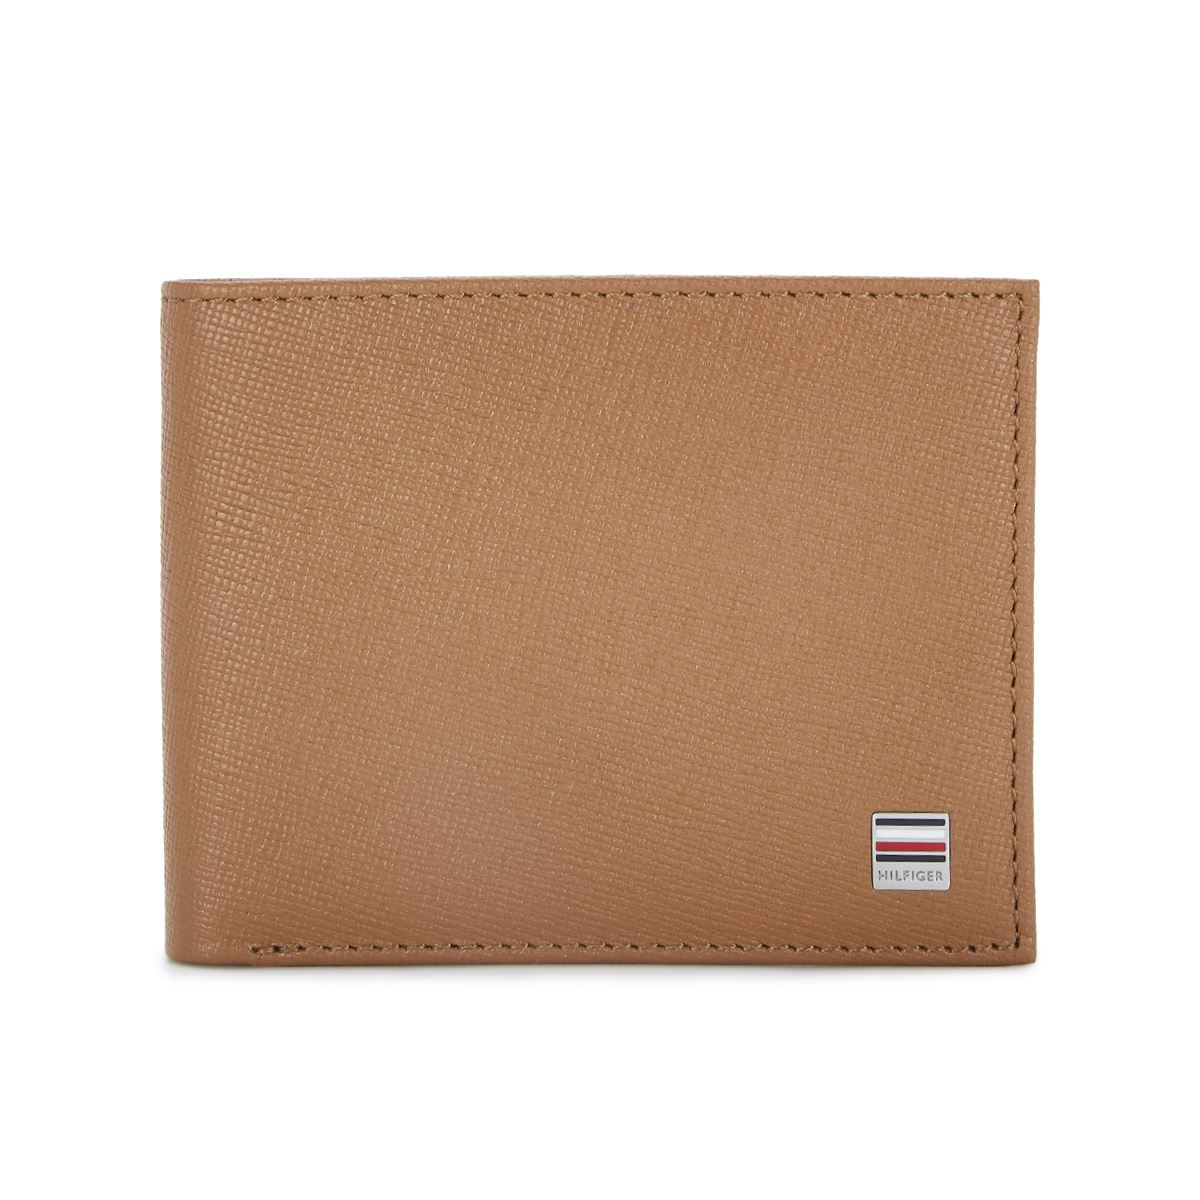 Tommy Hilfiger Leather Mens Textured Tan Orchid Slimfold Wallet